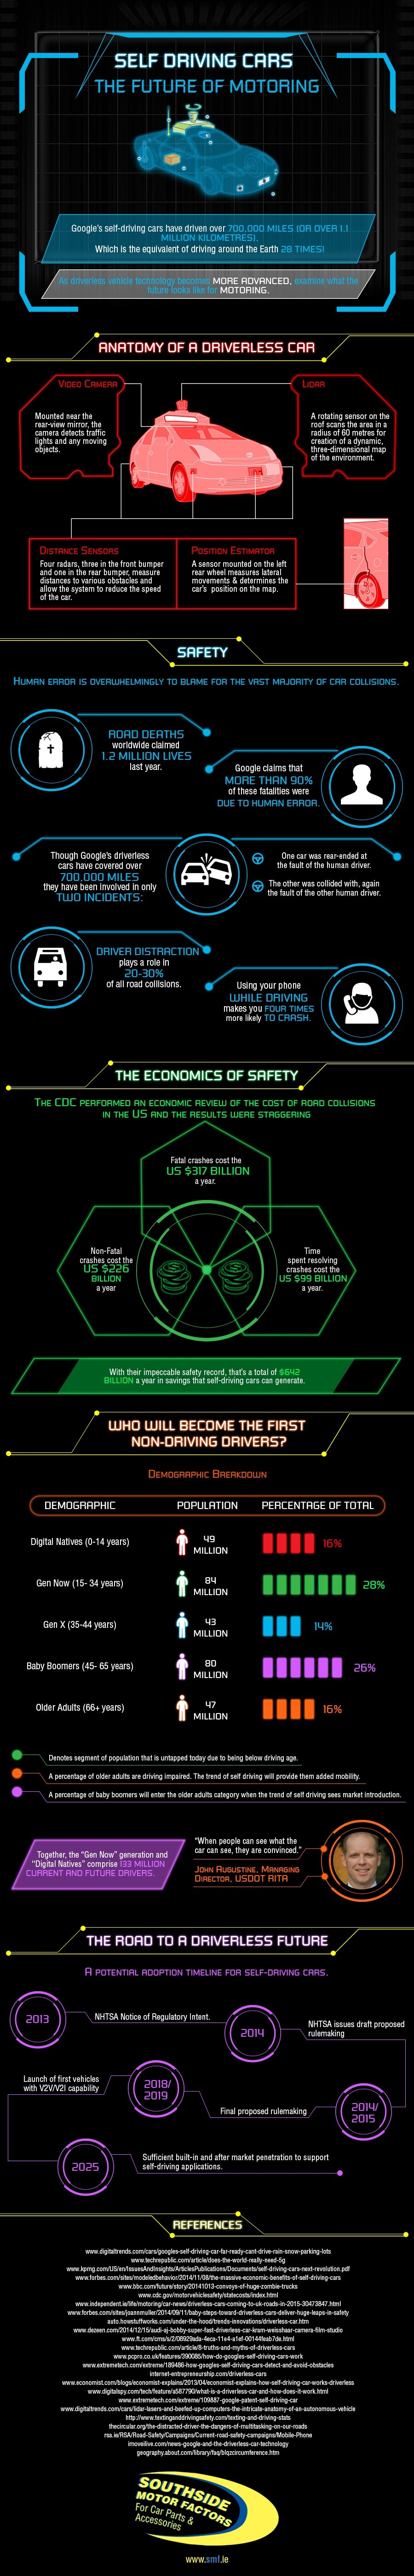 Self-Driving-Cars-IG